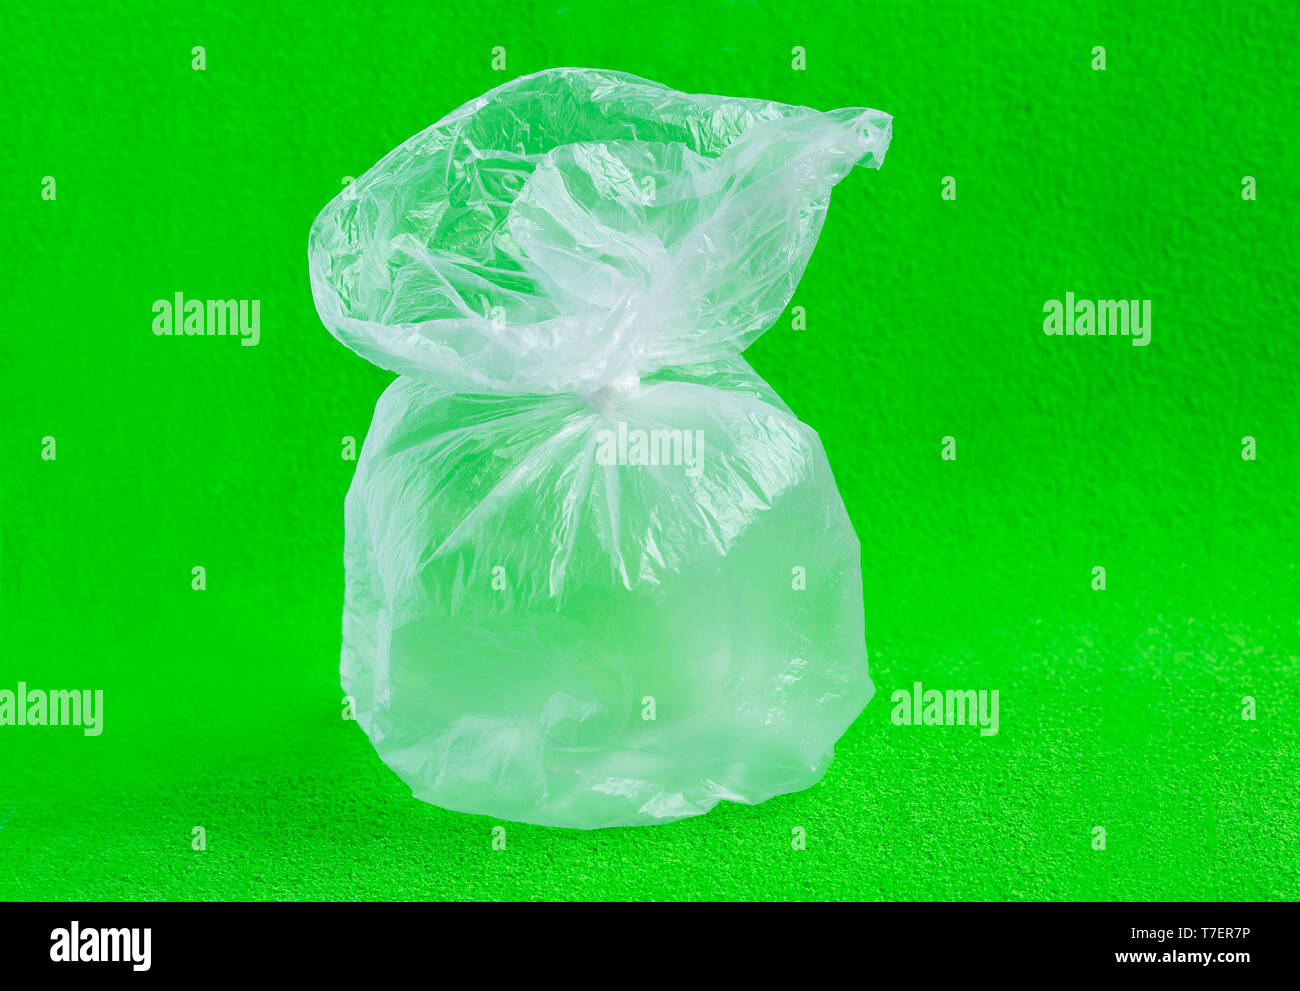 Closed plastic bag on green background. Environmental Protection. - Stock Image